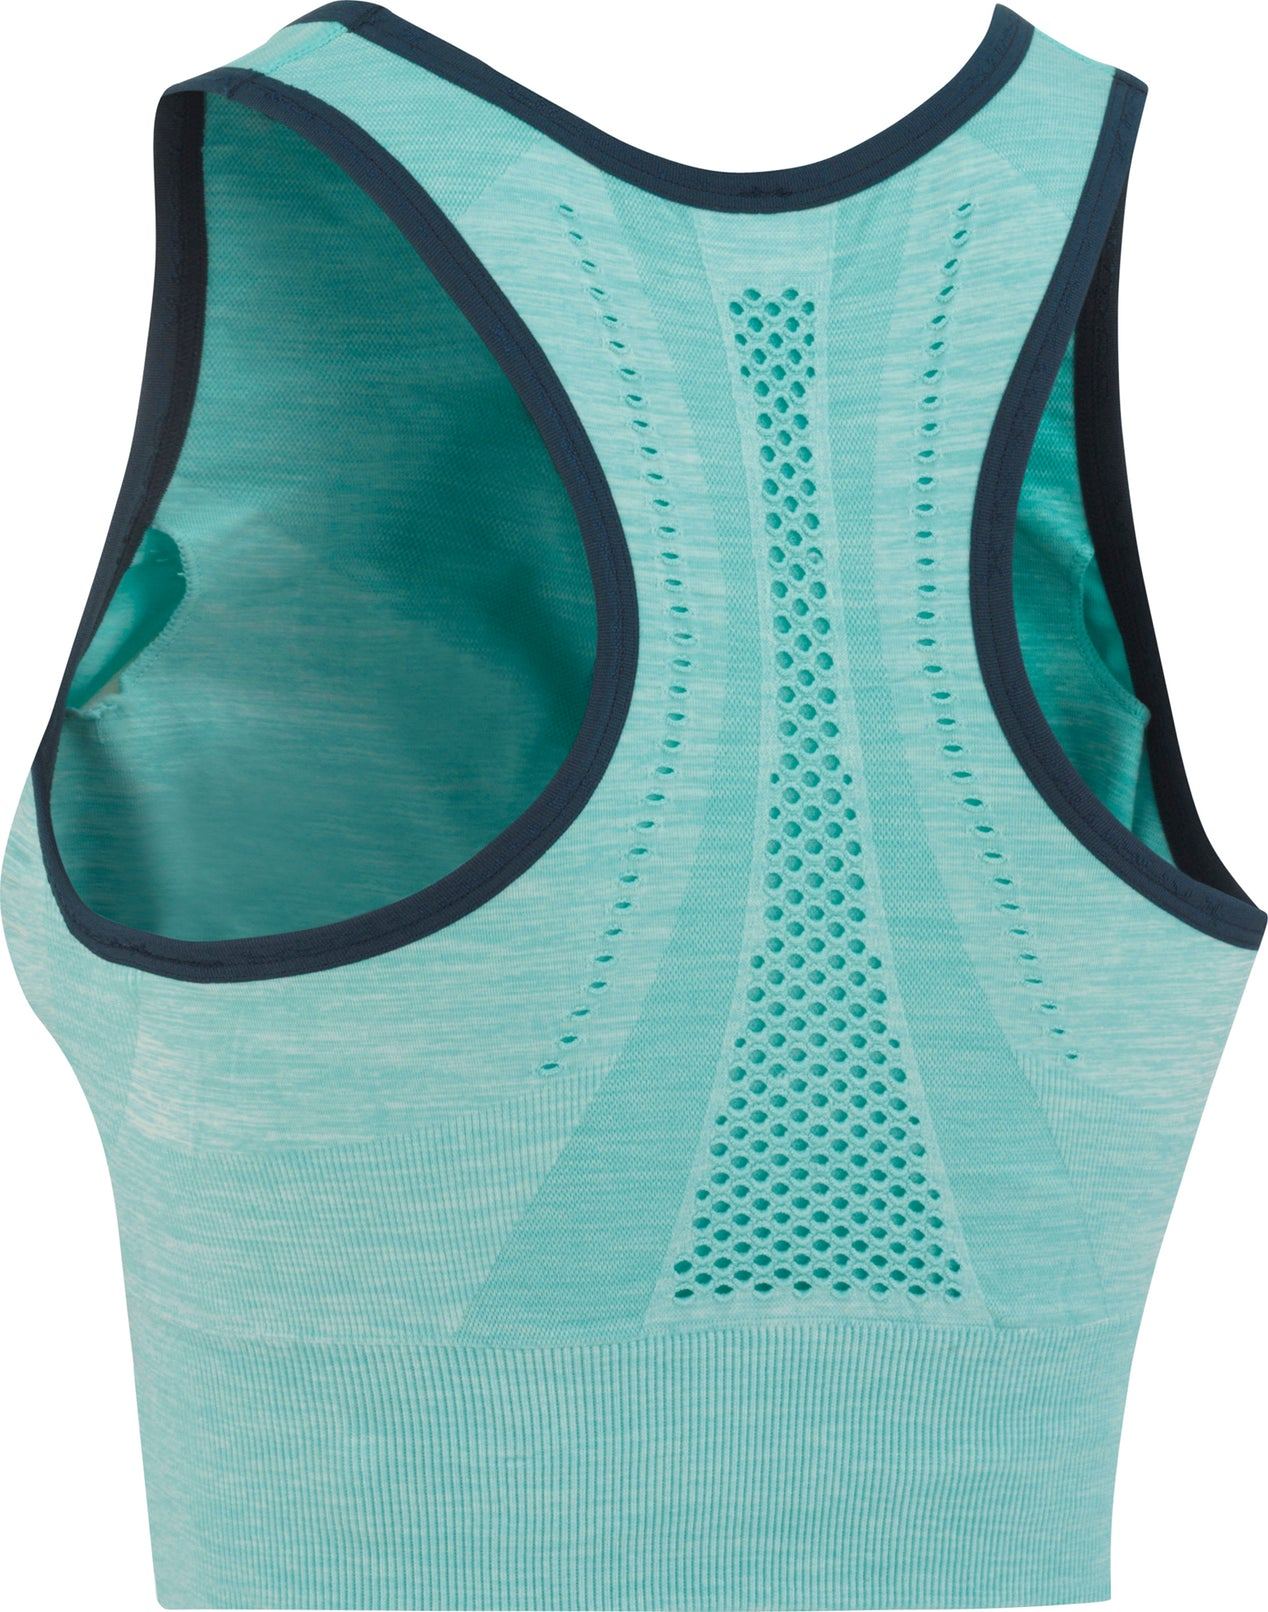 76ca72bc Kari Traa Ness - Women's | Altitude Sports